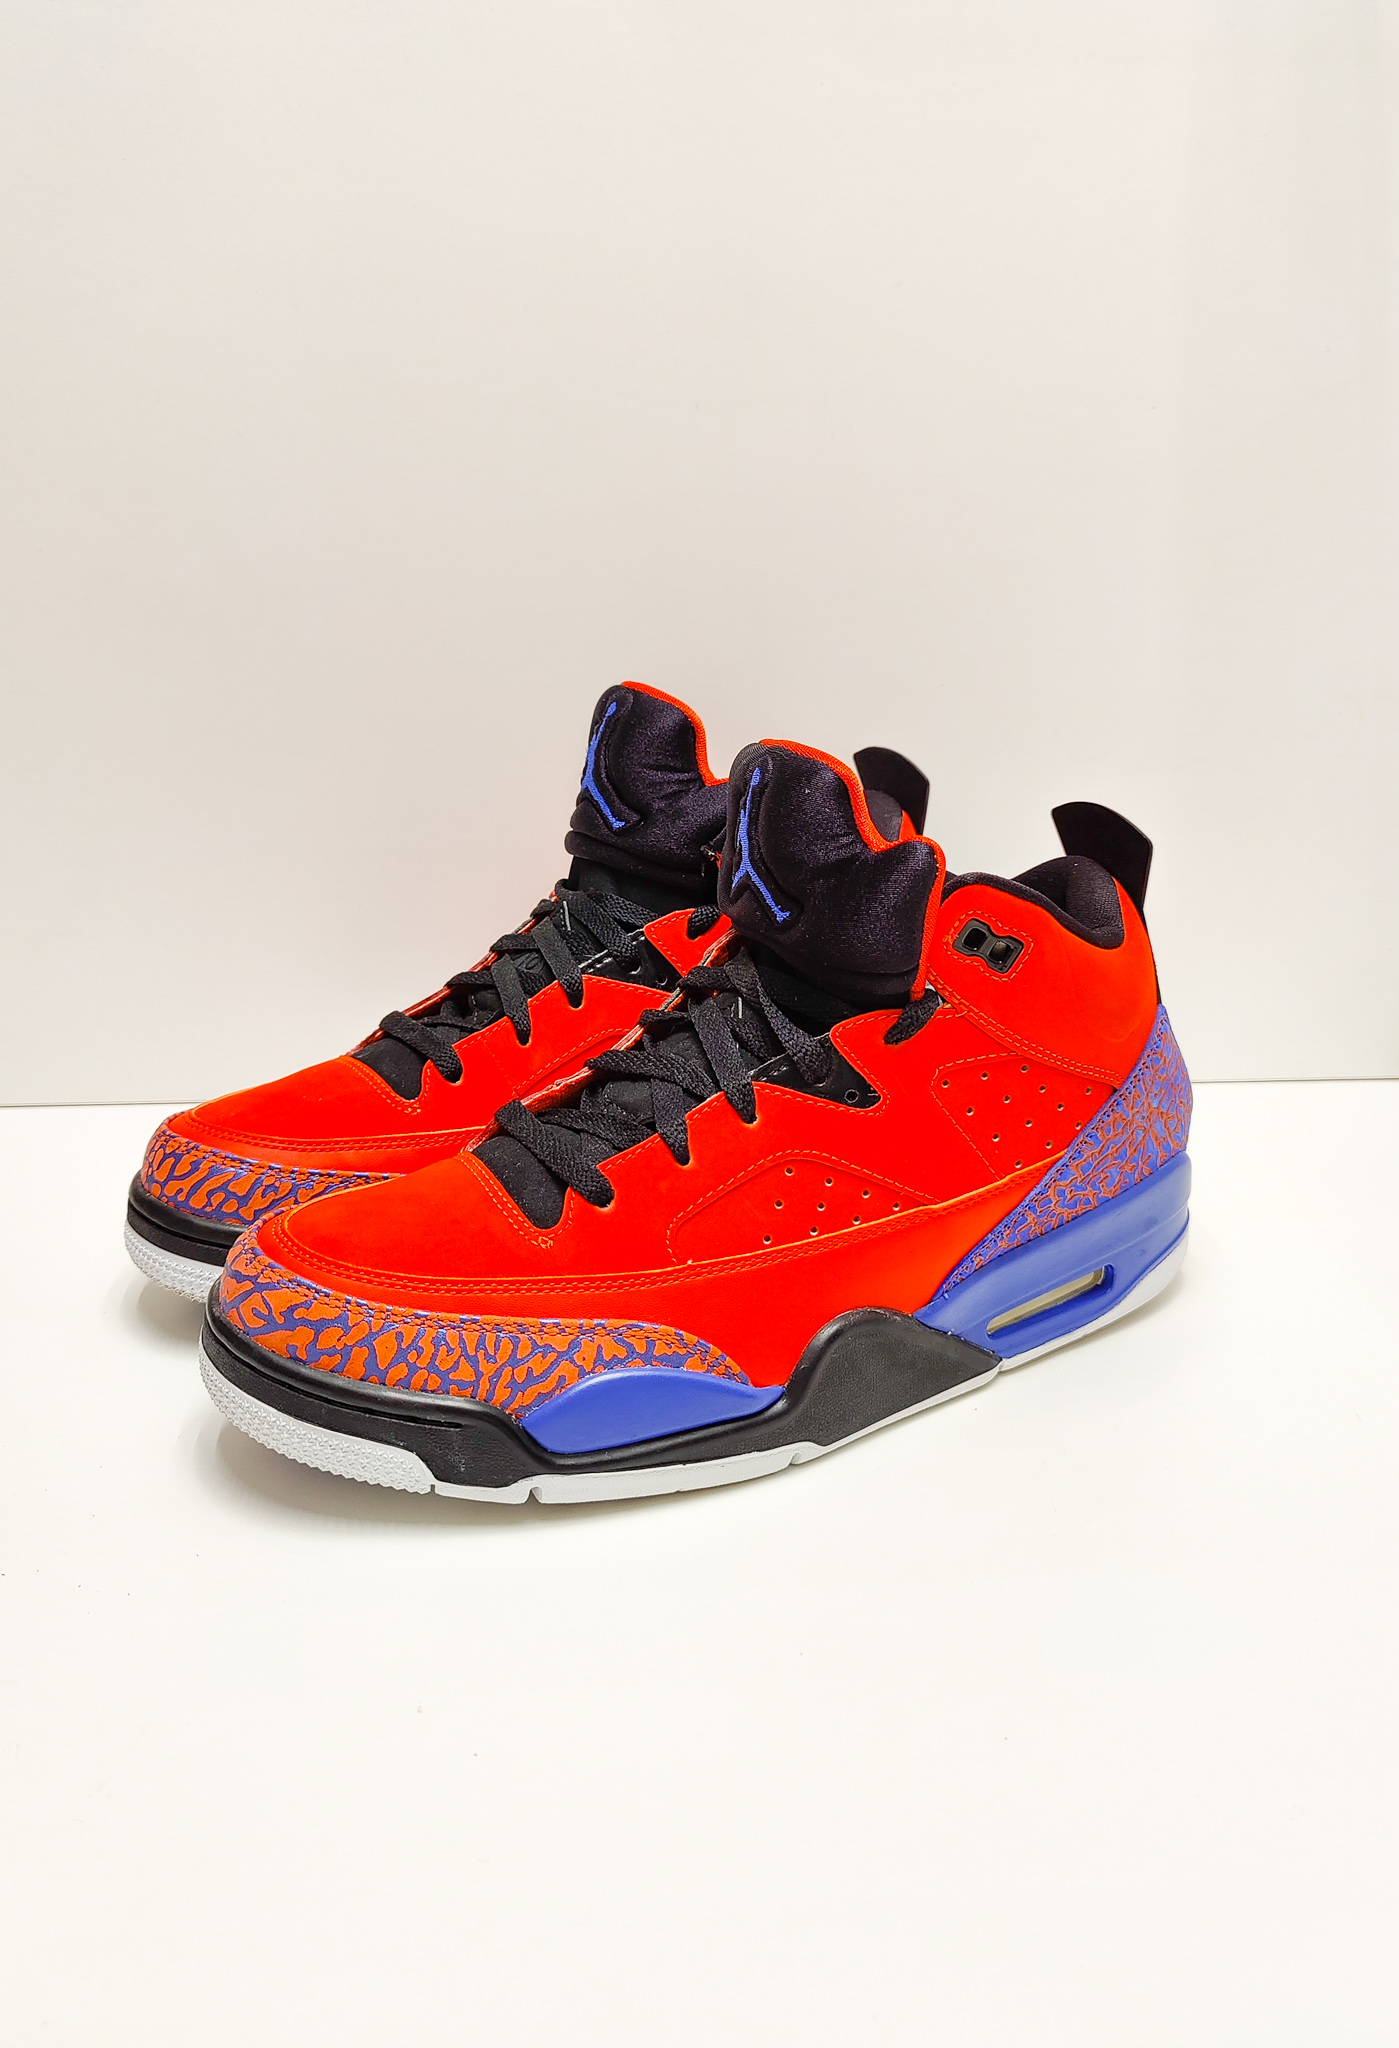 Jordan Son of Mars Low Knicks